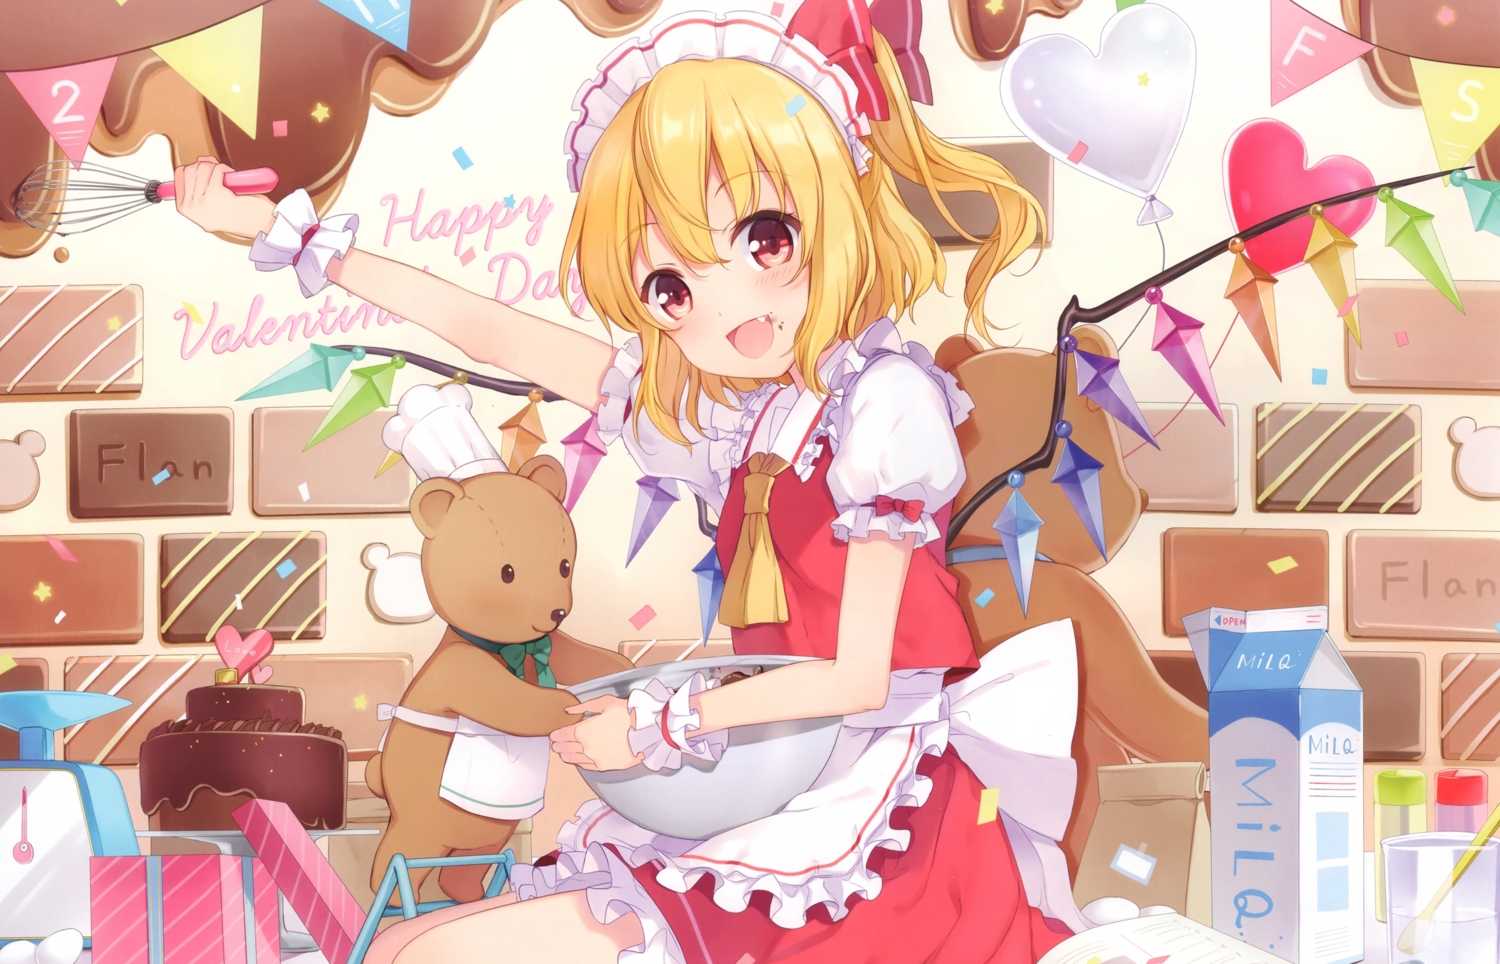 6u_(eternal_land) apron blonde_hair blush bow cake candy chocolate cropped fang flandre_scarlet food headdress heart ponytail red_eyes scan short_hair skirt teddy_bear touhou valentine vampire wings wristwear